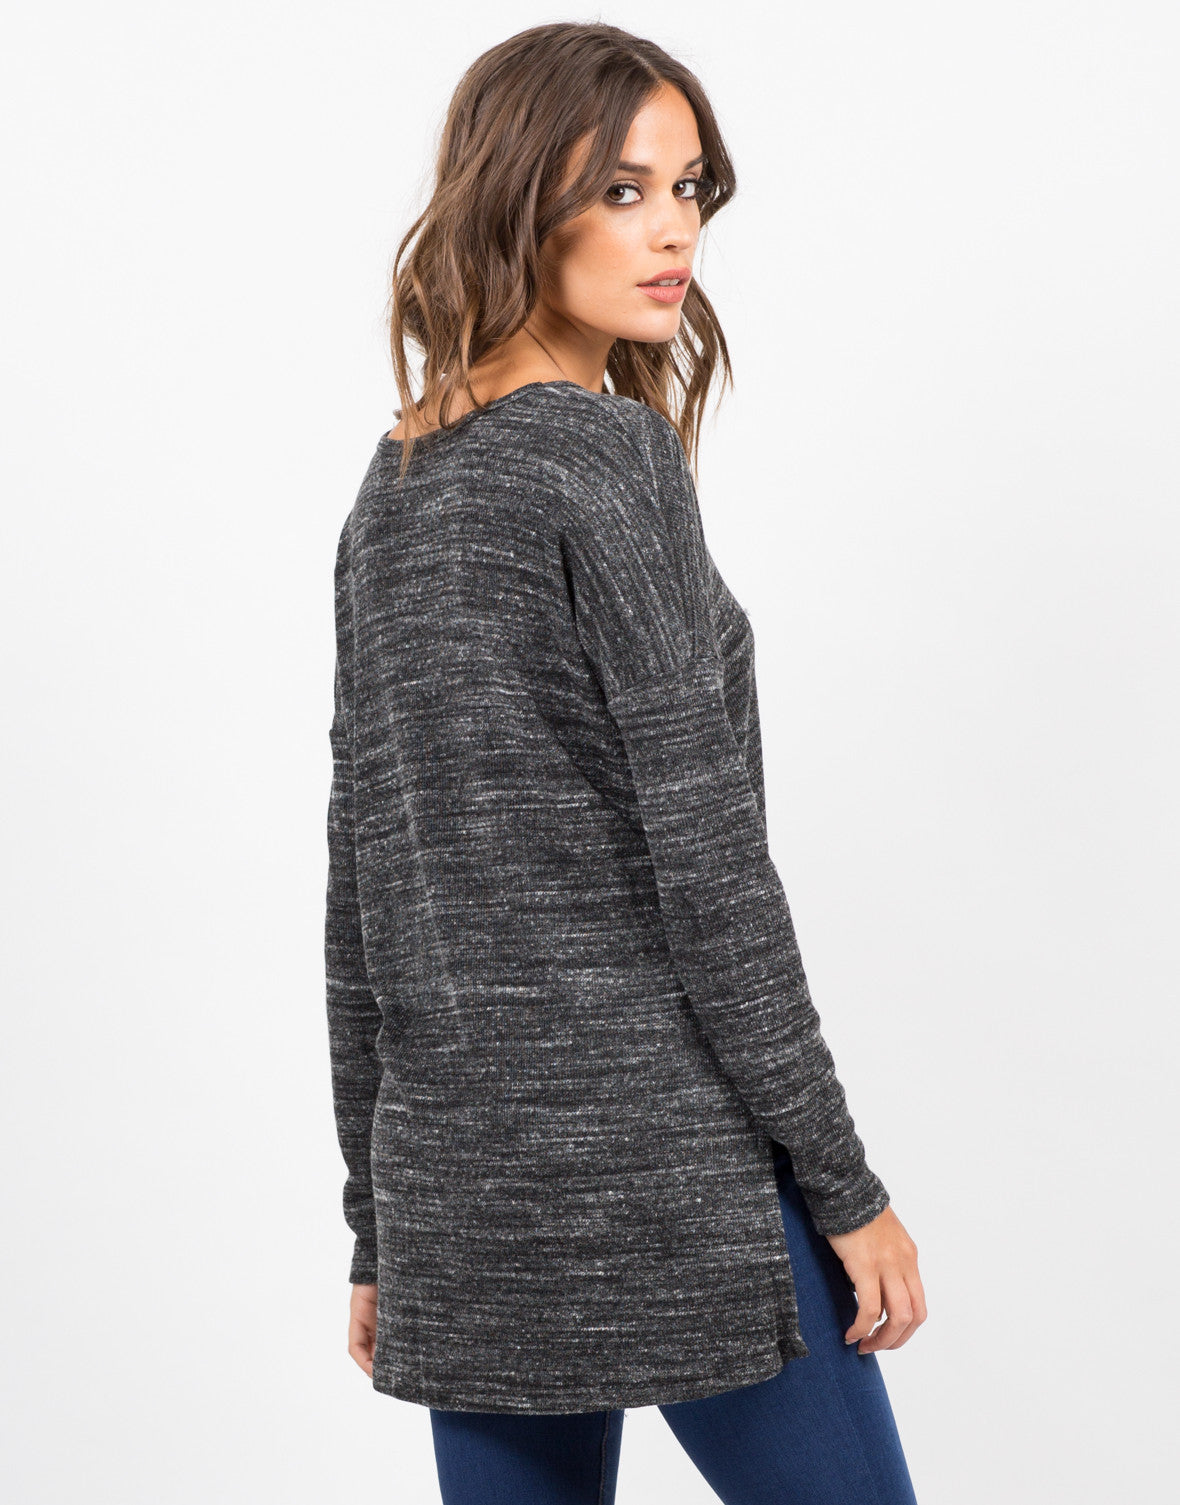 Back View of Double Slit Long Sleeve Top